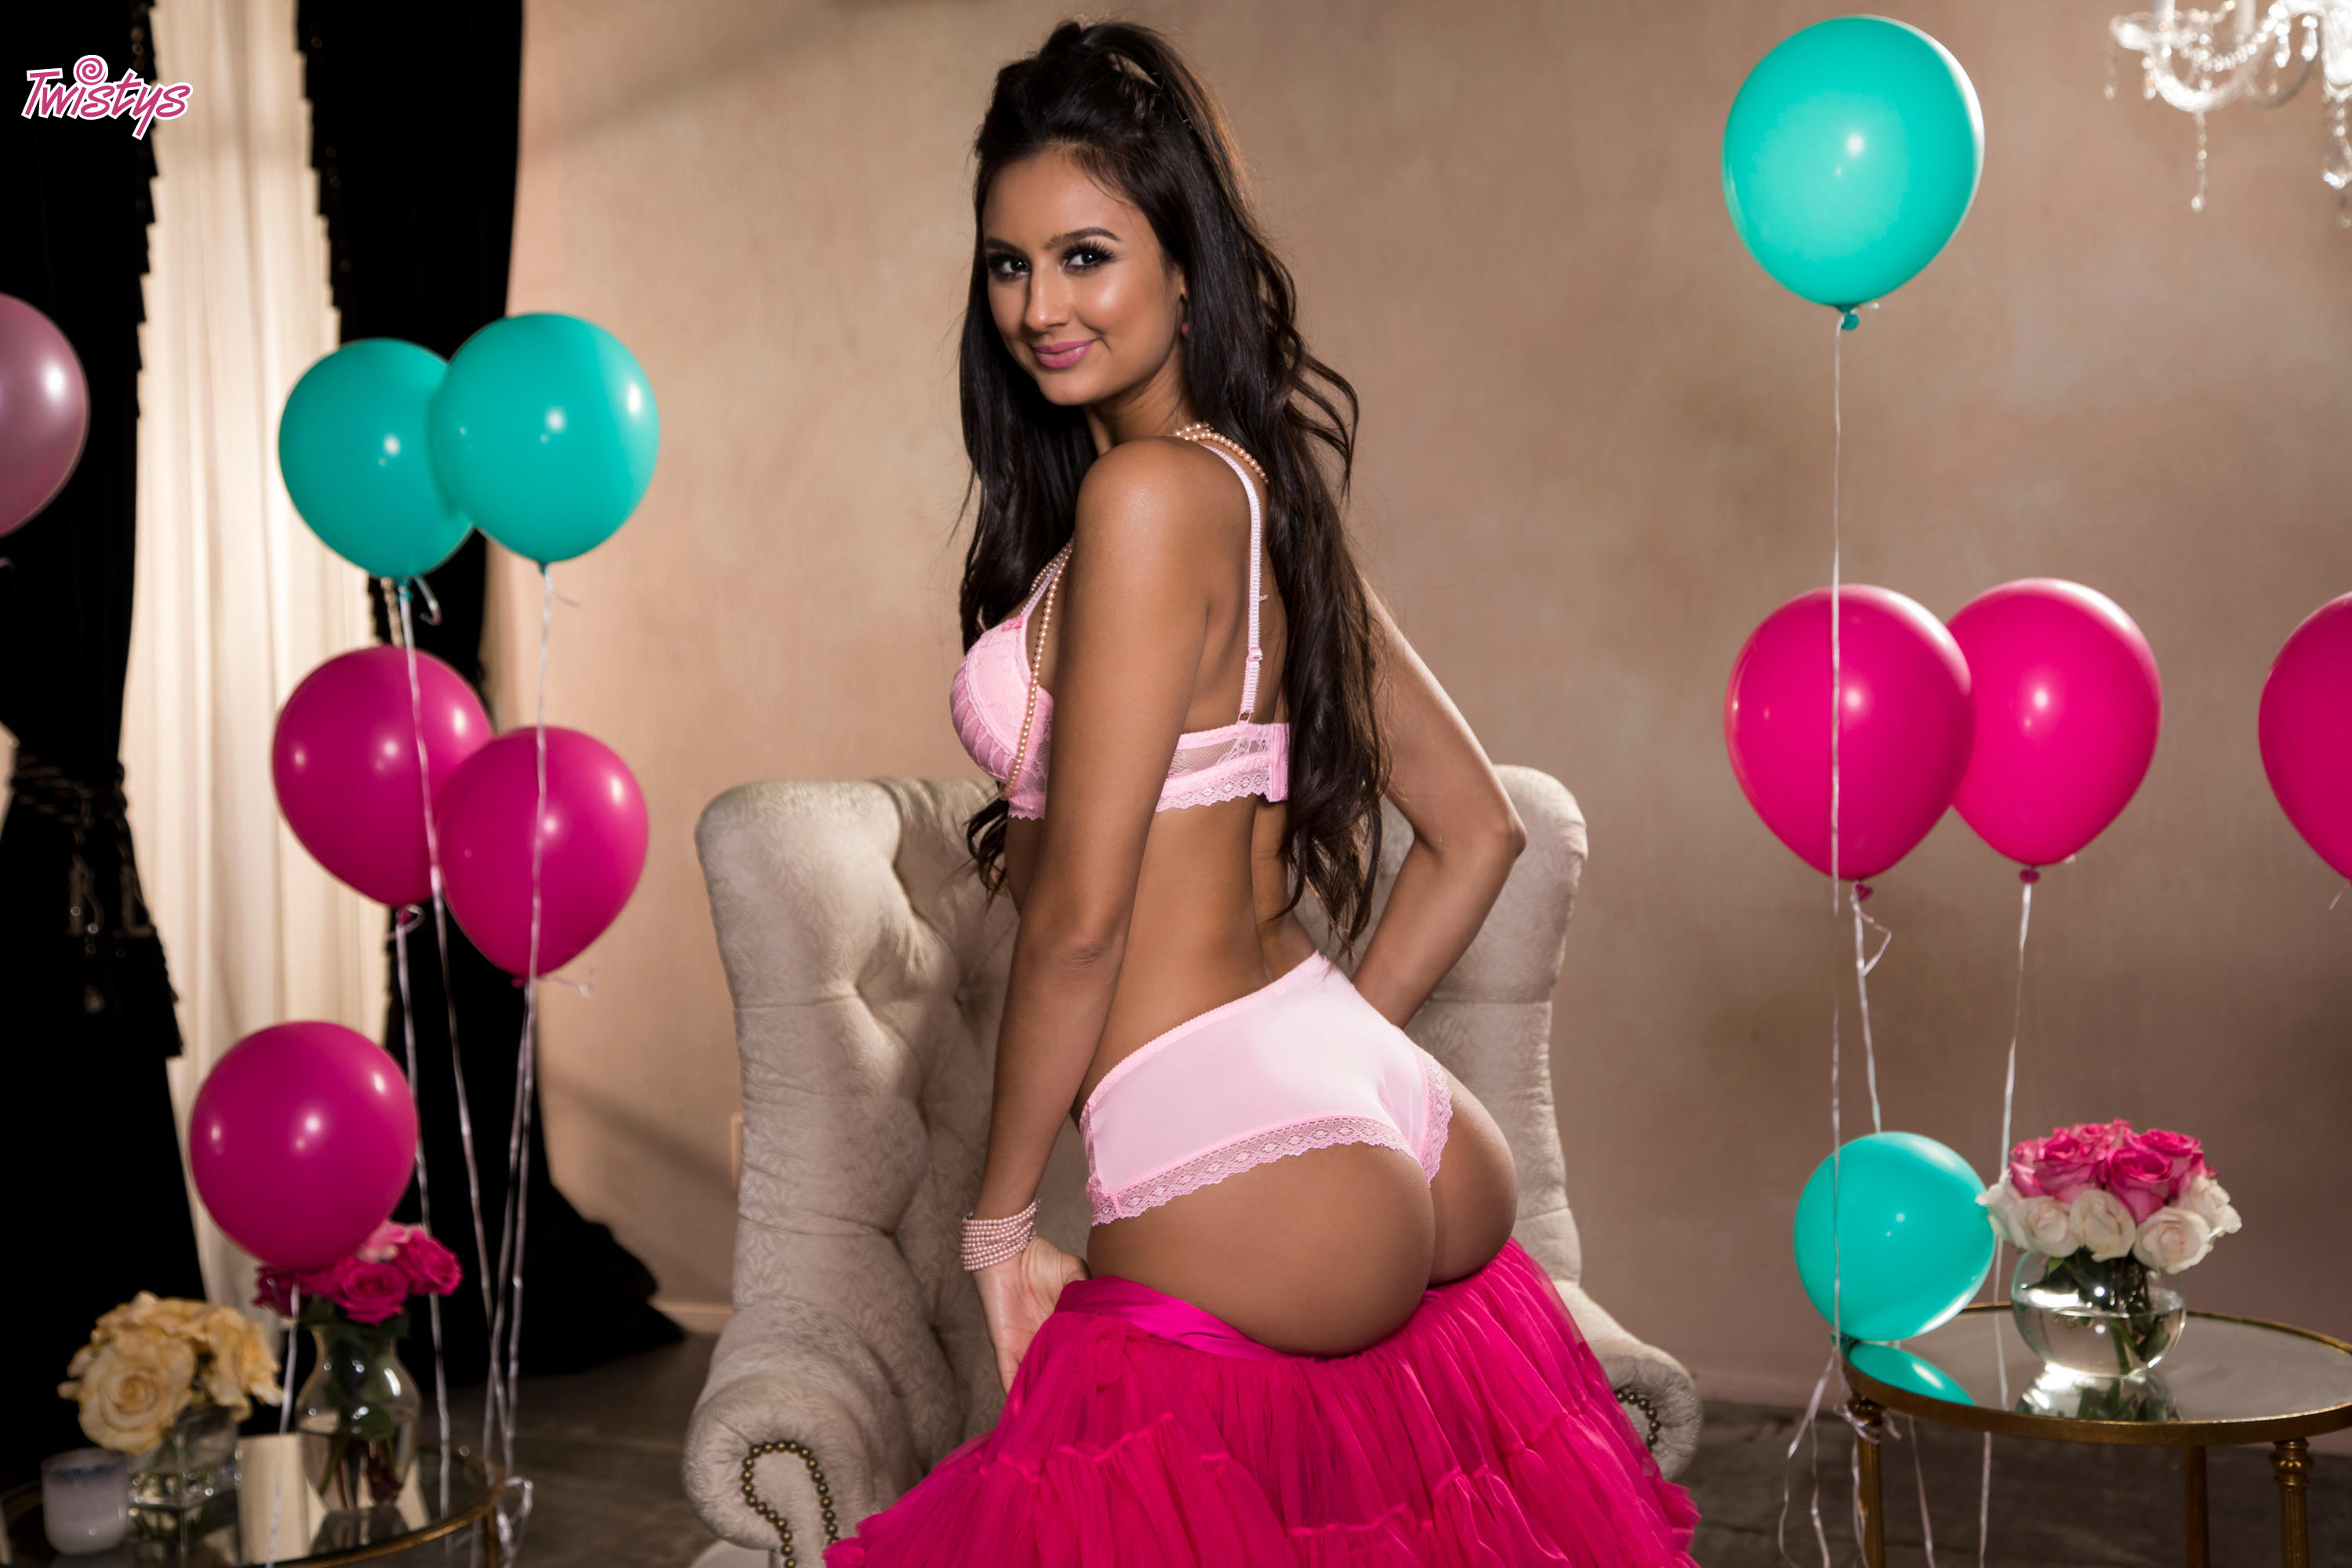 Twistys 'Balloons and Bubble Gum' starring Eliza Ibarra (Photo 16)